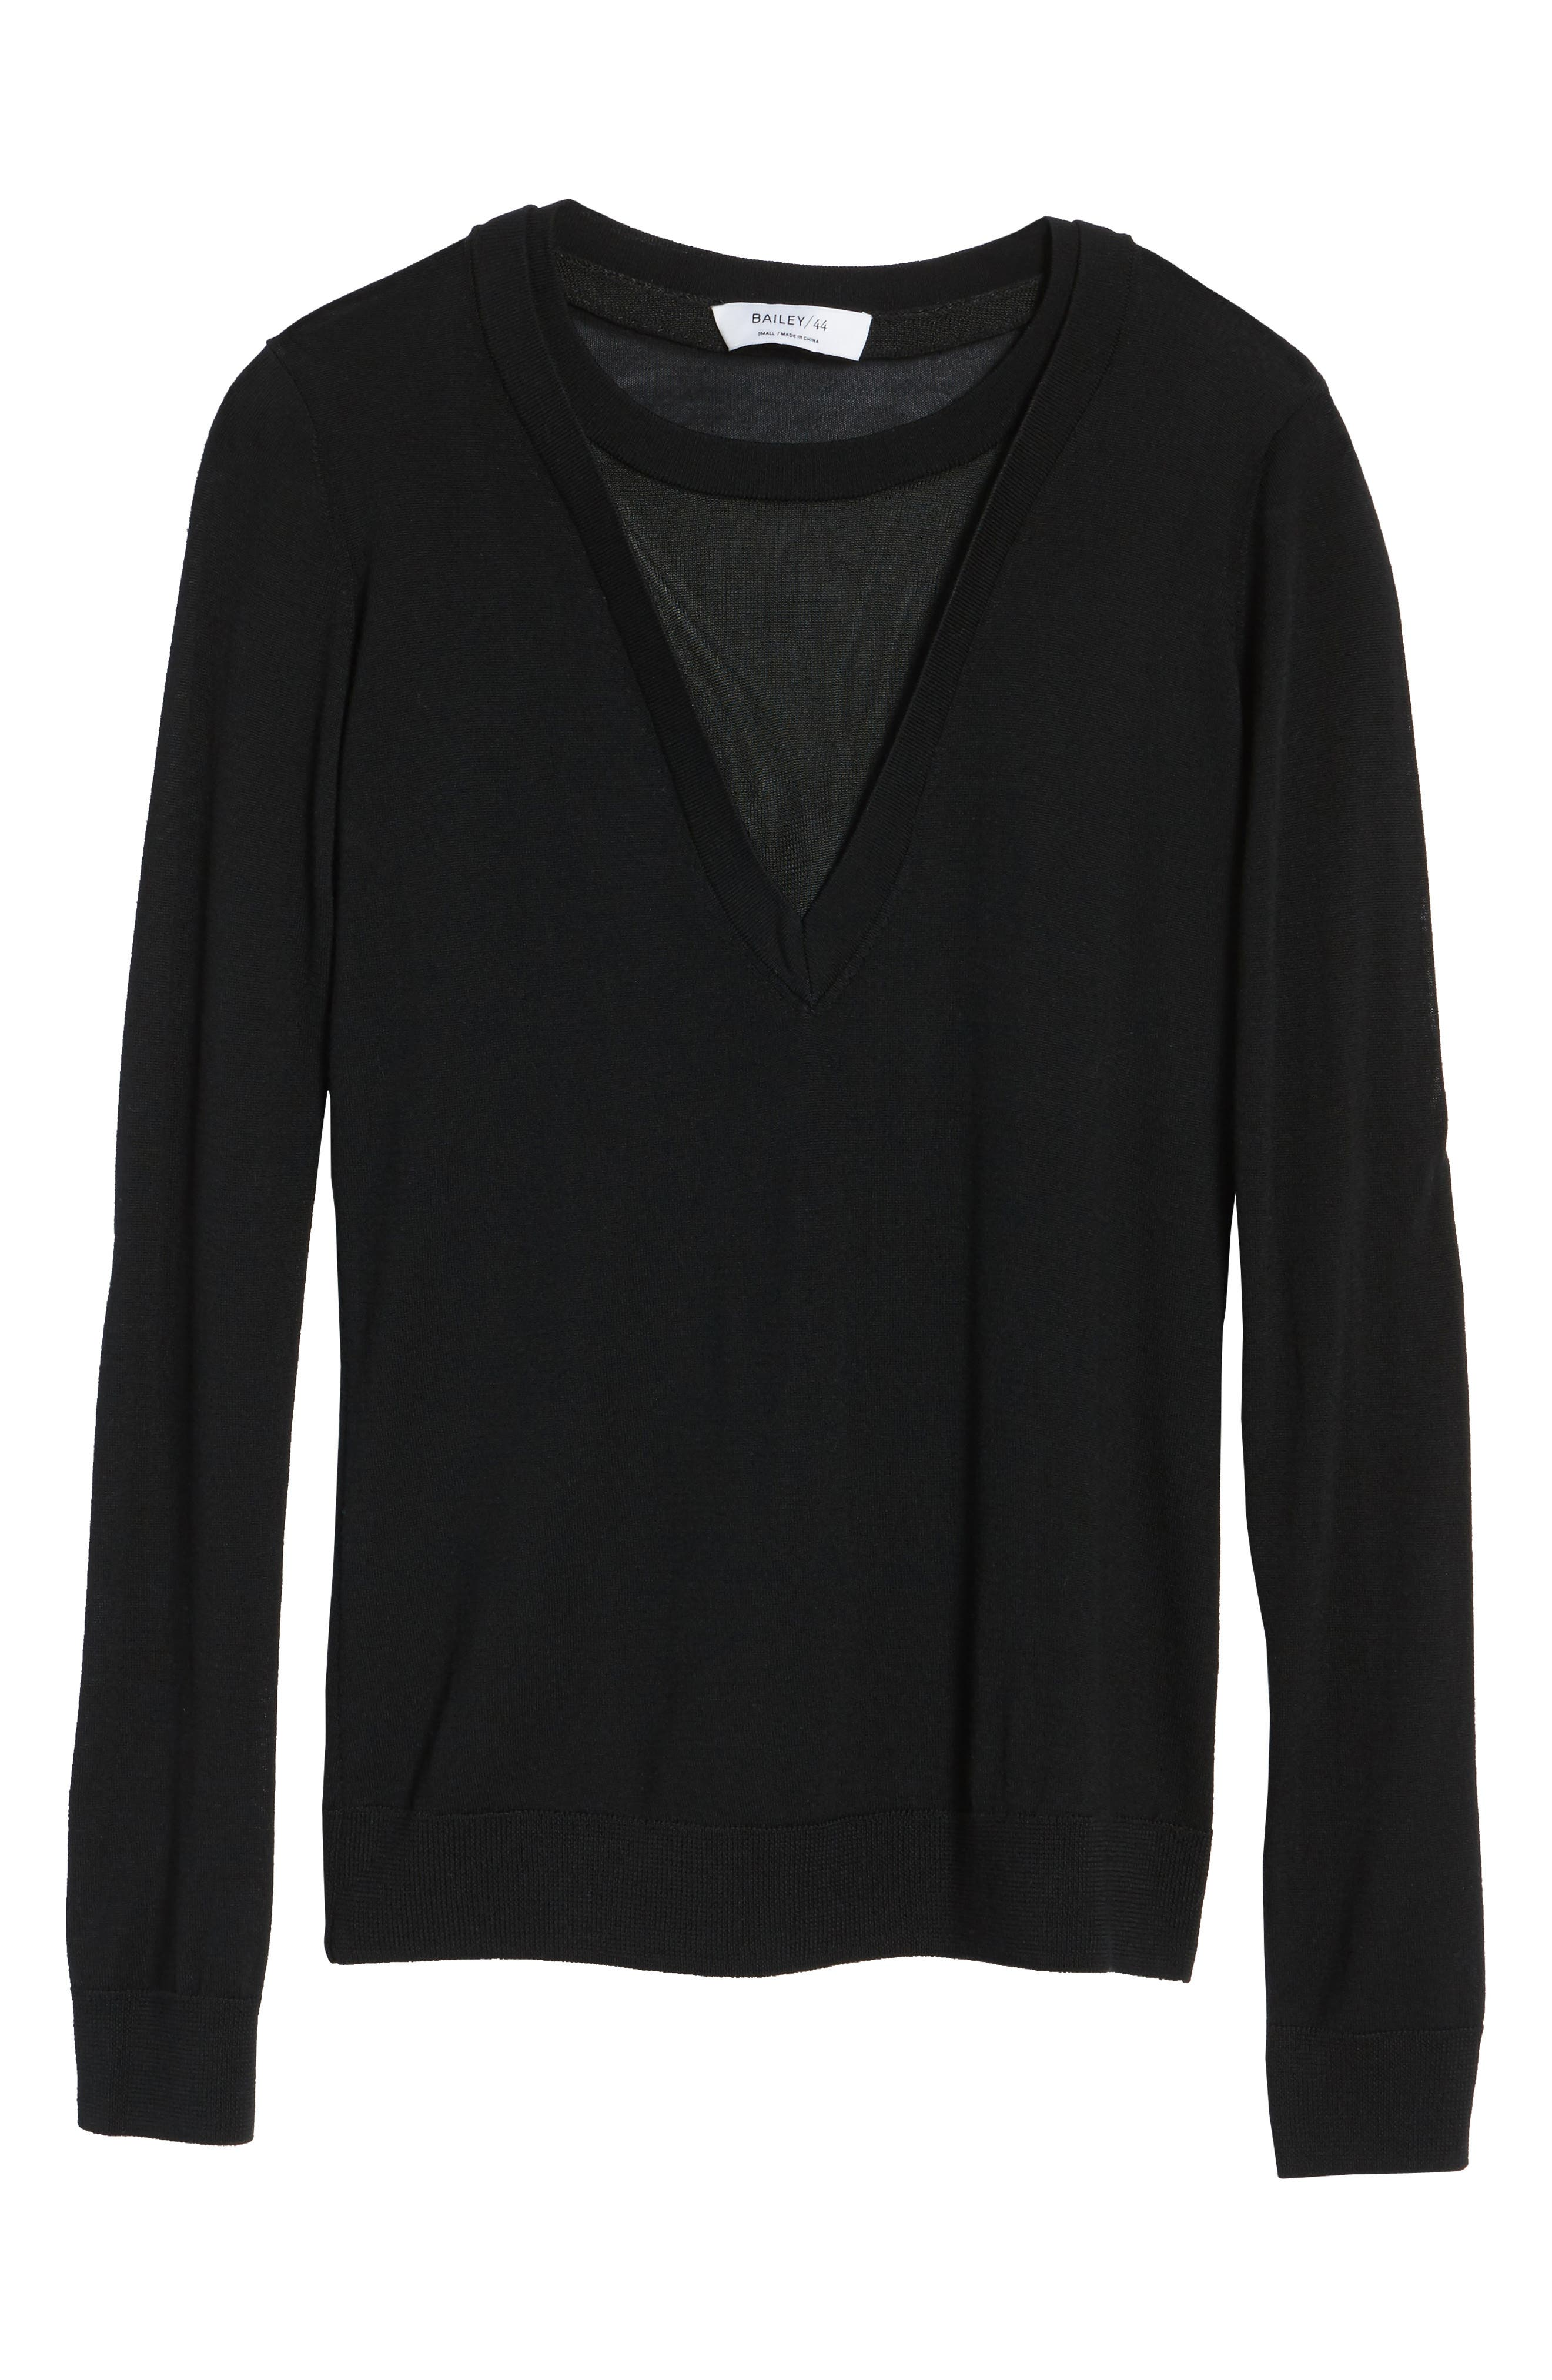 Chivalry Mesh Sweater,                             Alternate thumbnail 6, color,                             Black